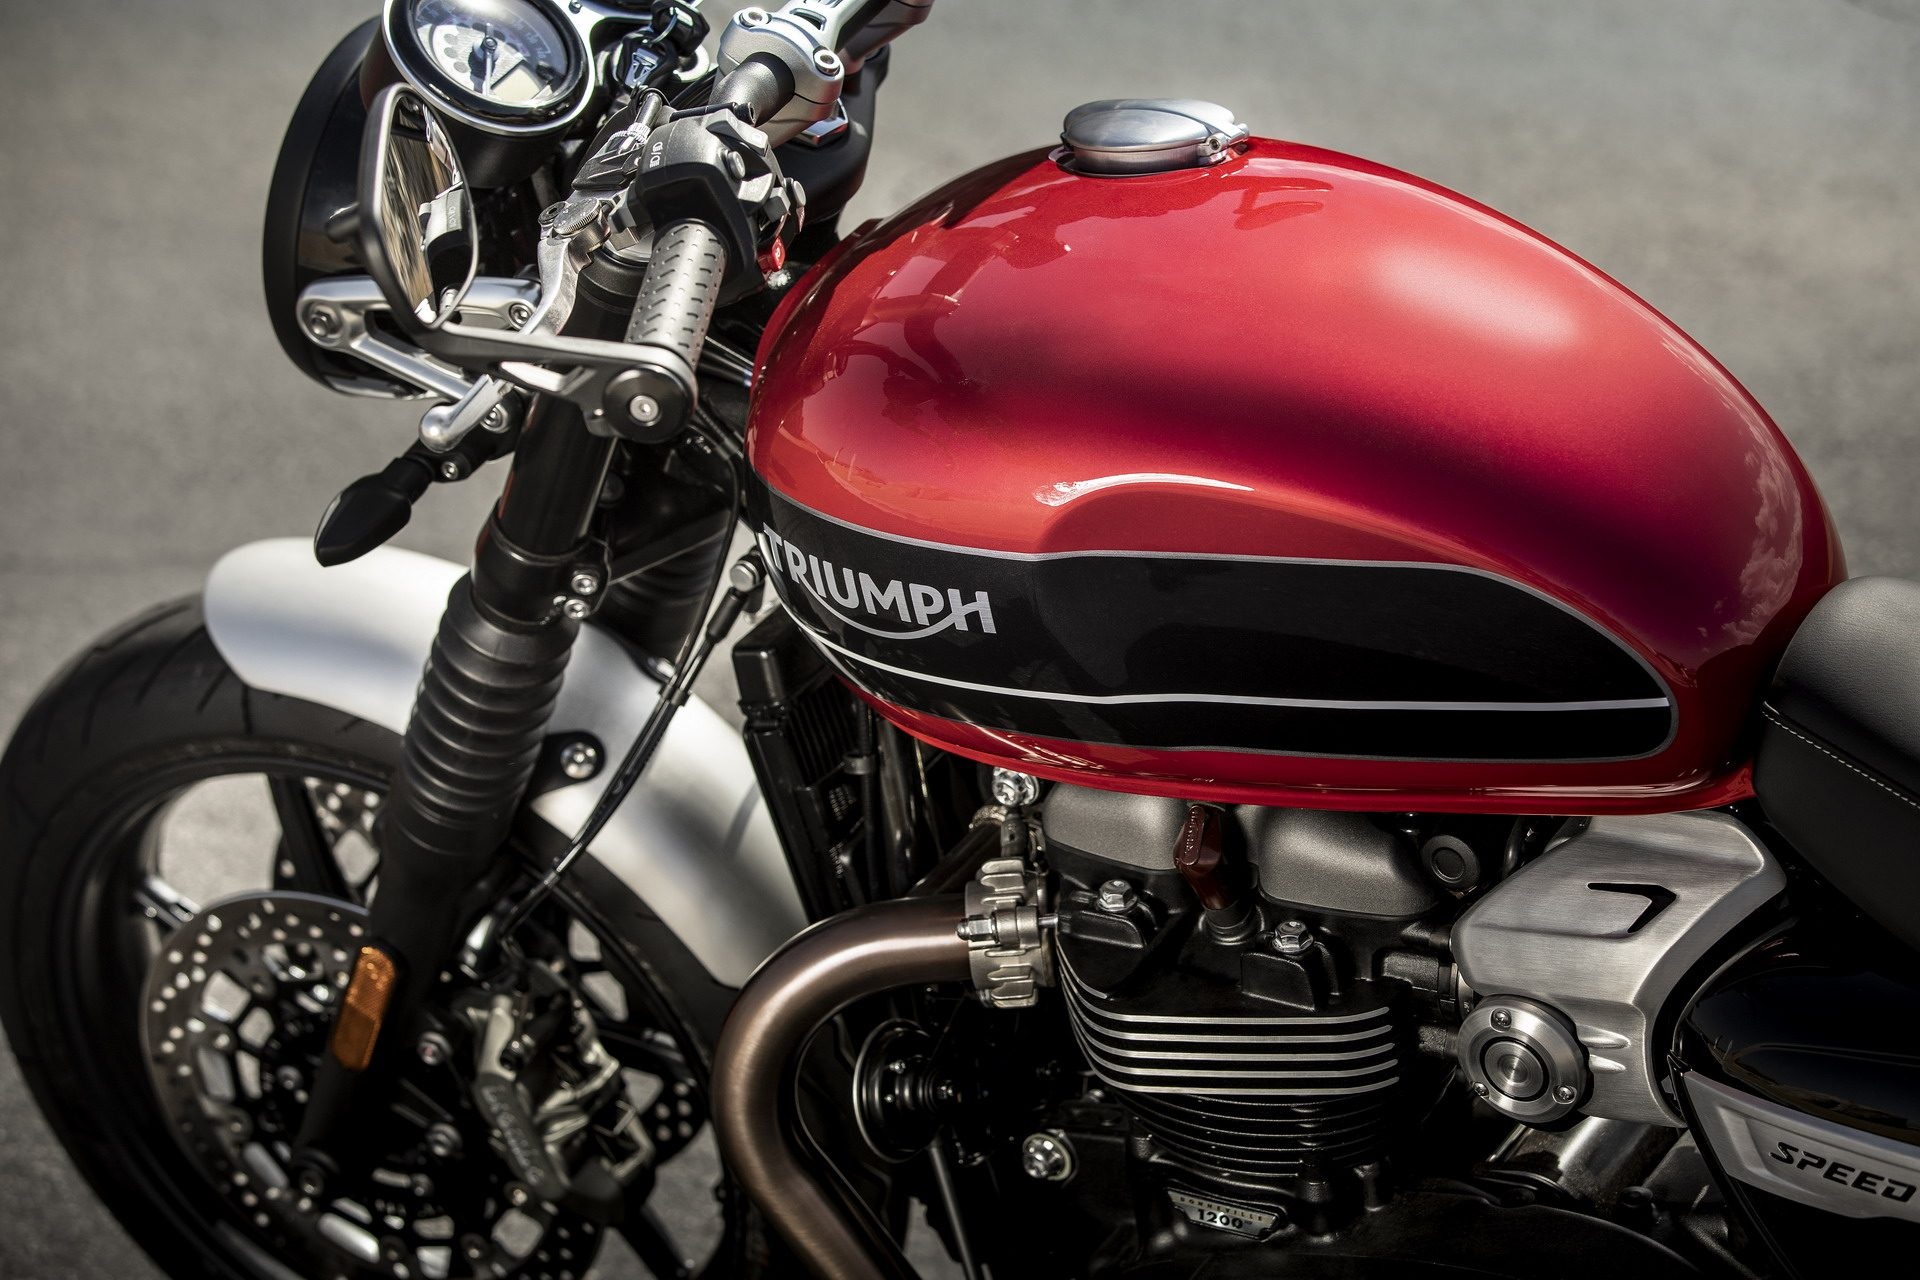 Nuova Triumph Speed Twin, motore potente per performance esaltanti